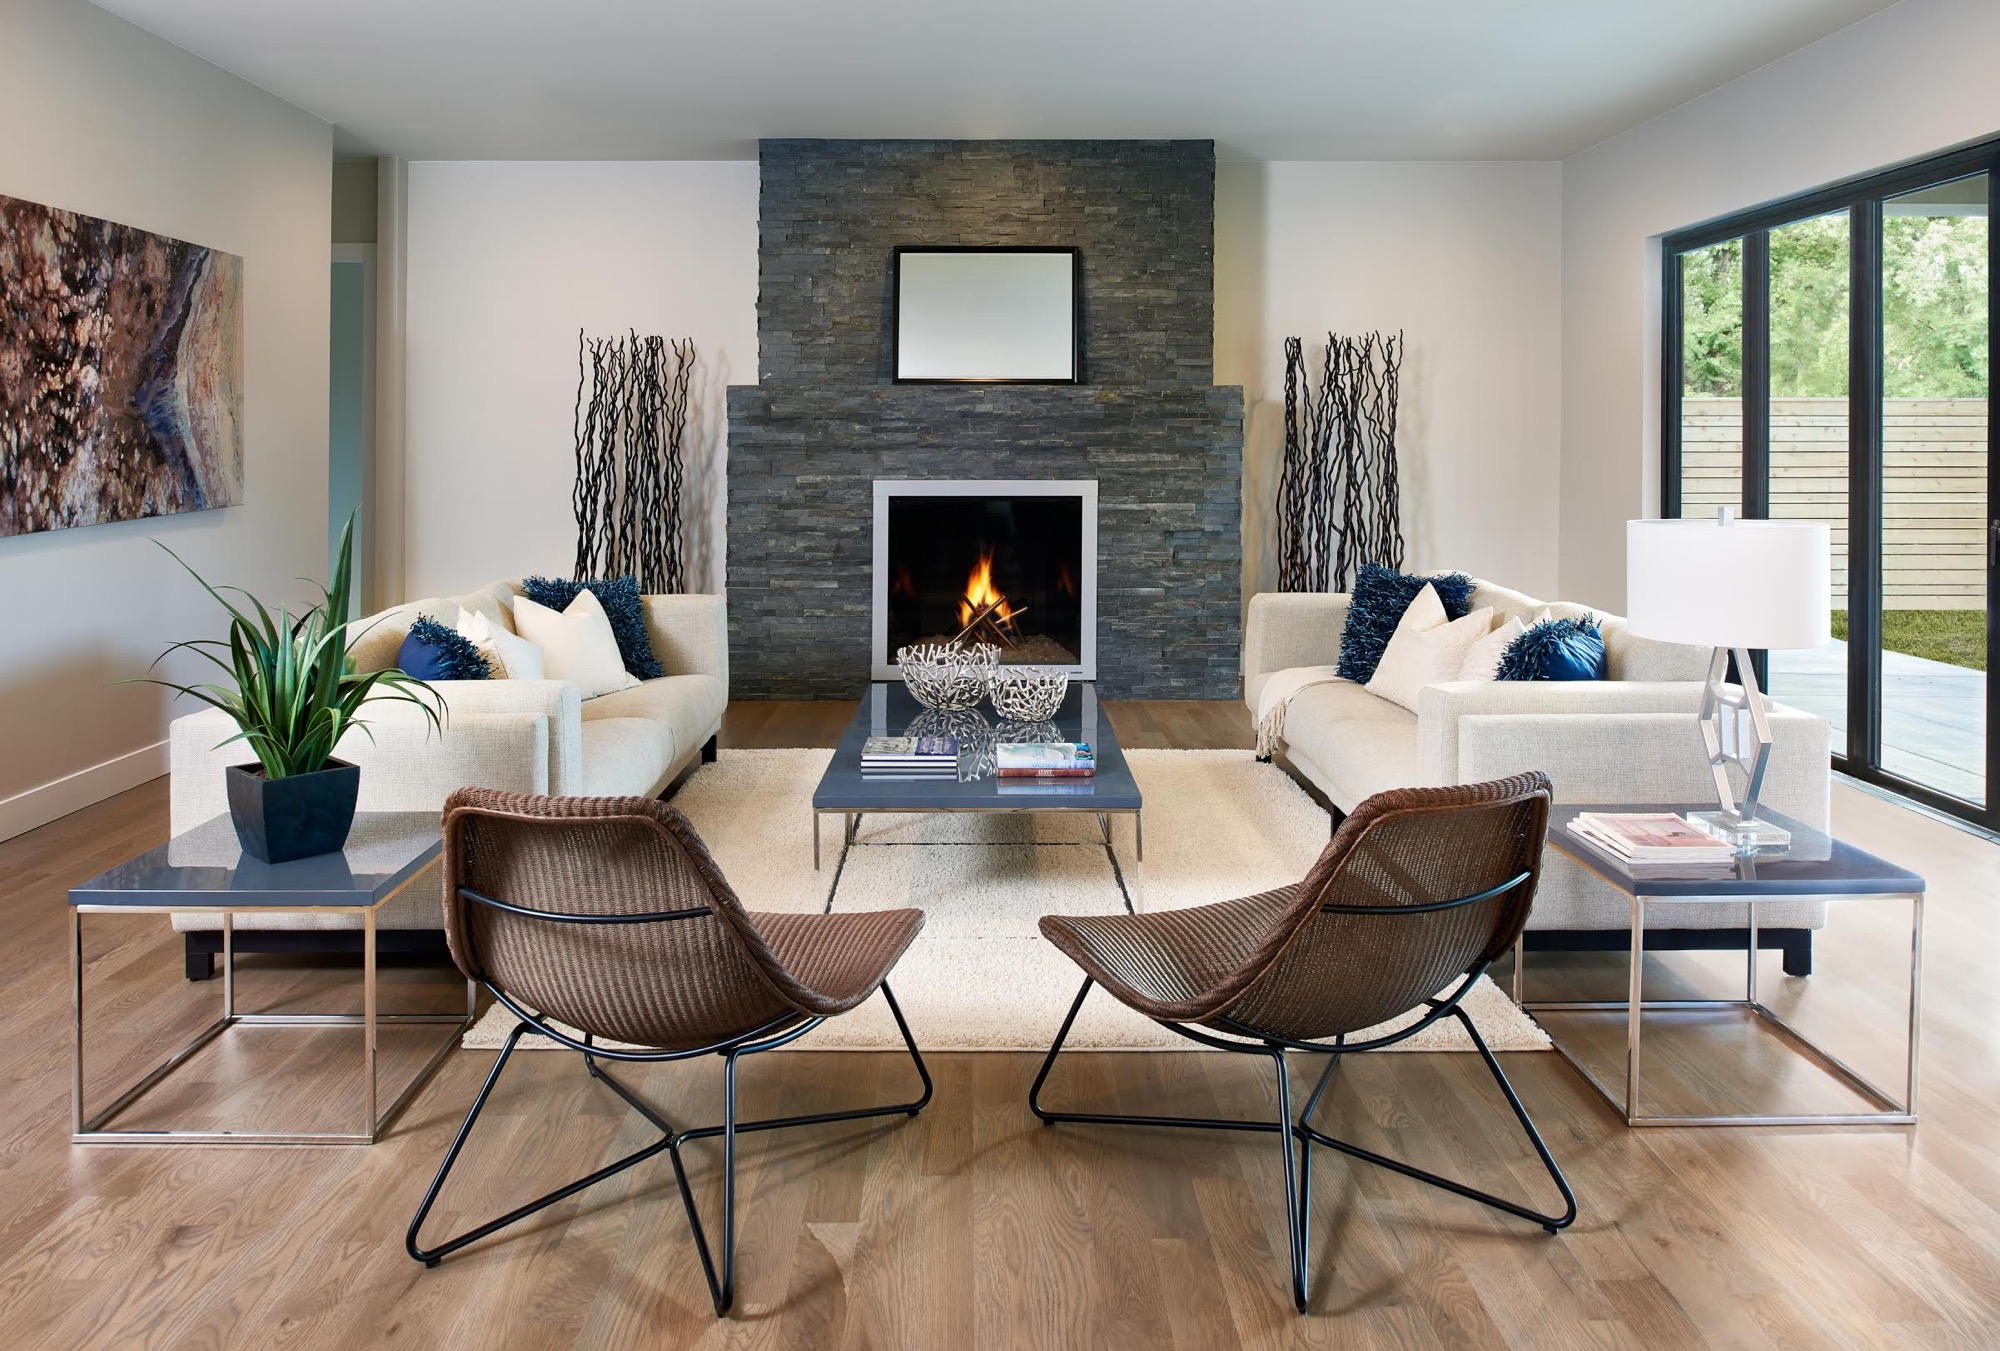 Best contractor for home staging